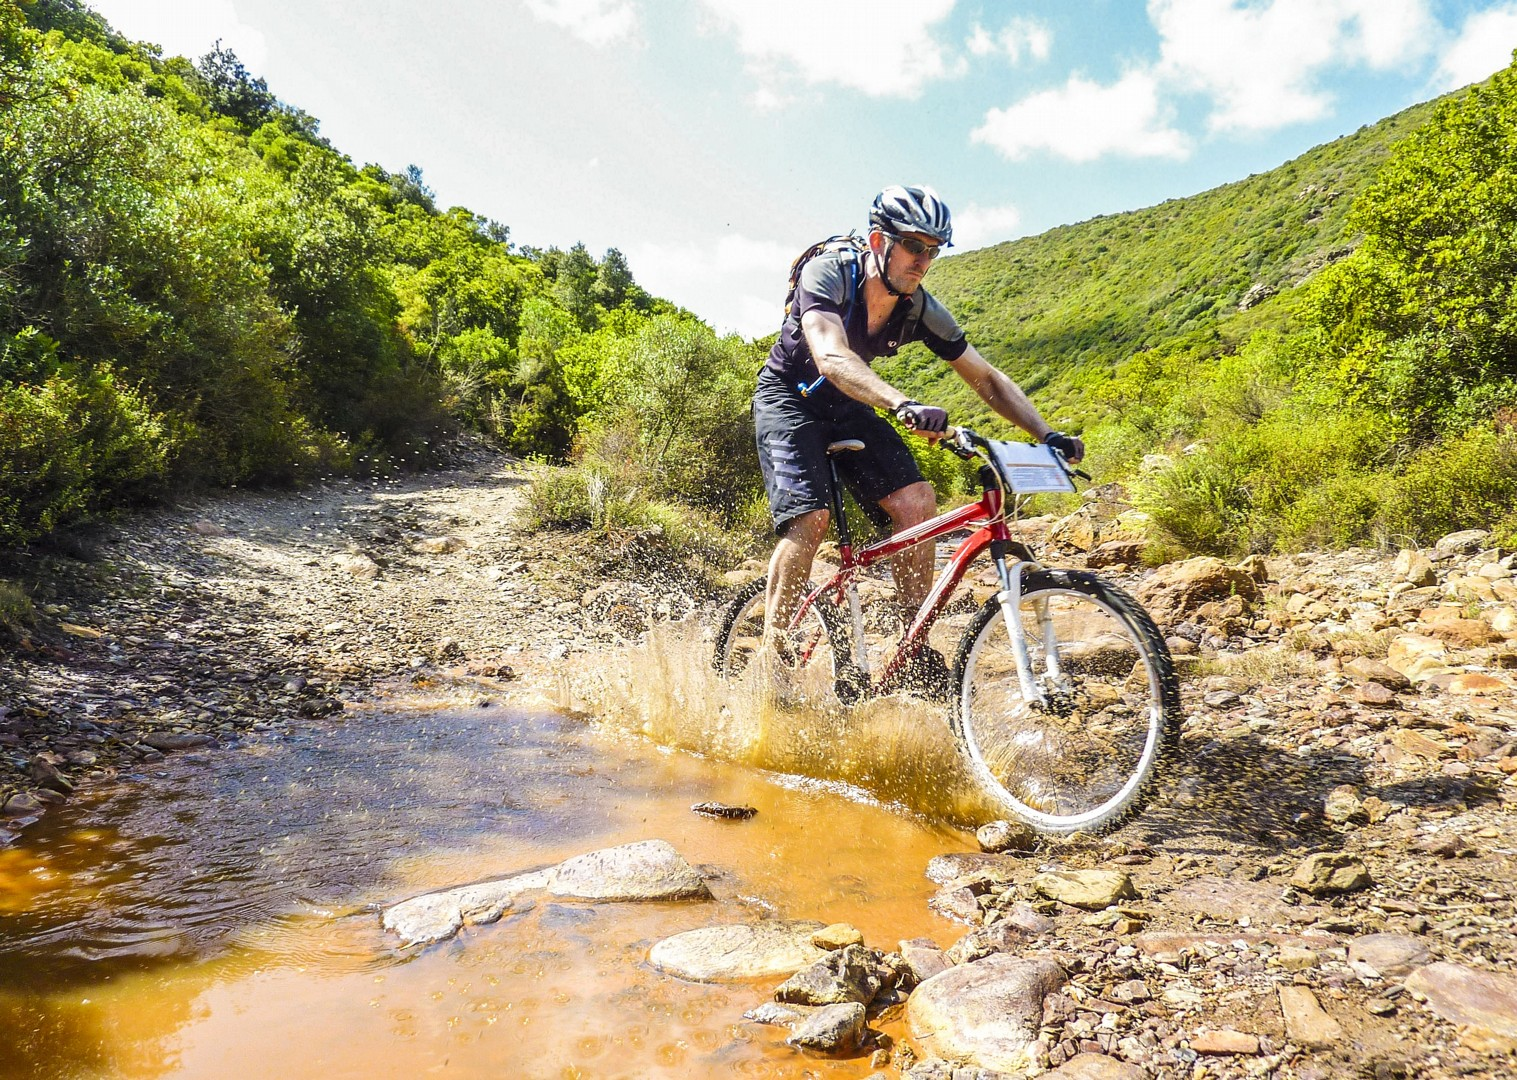 offroad-cycling-guided-adventure-mountain-biking-sardinia-italy.jpg - Sardinia - Coast to Coast - Mountain Biking